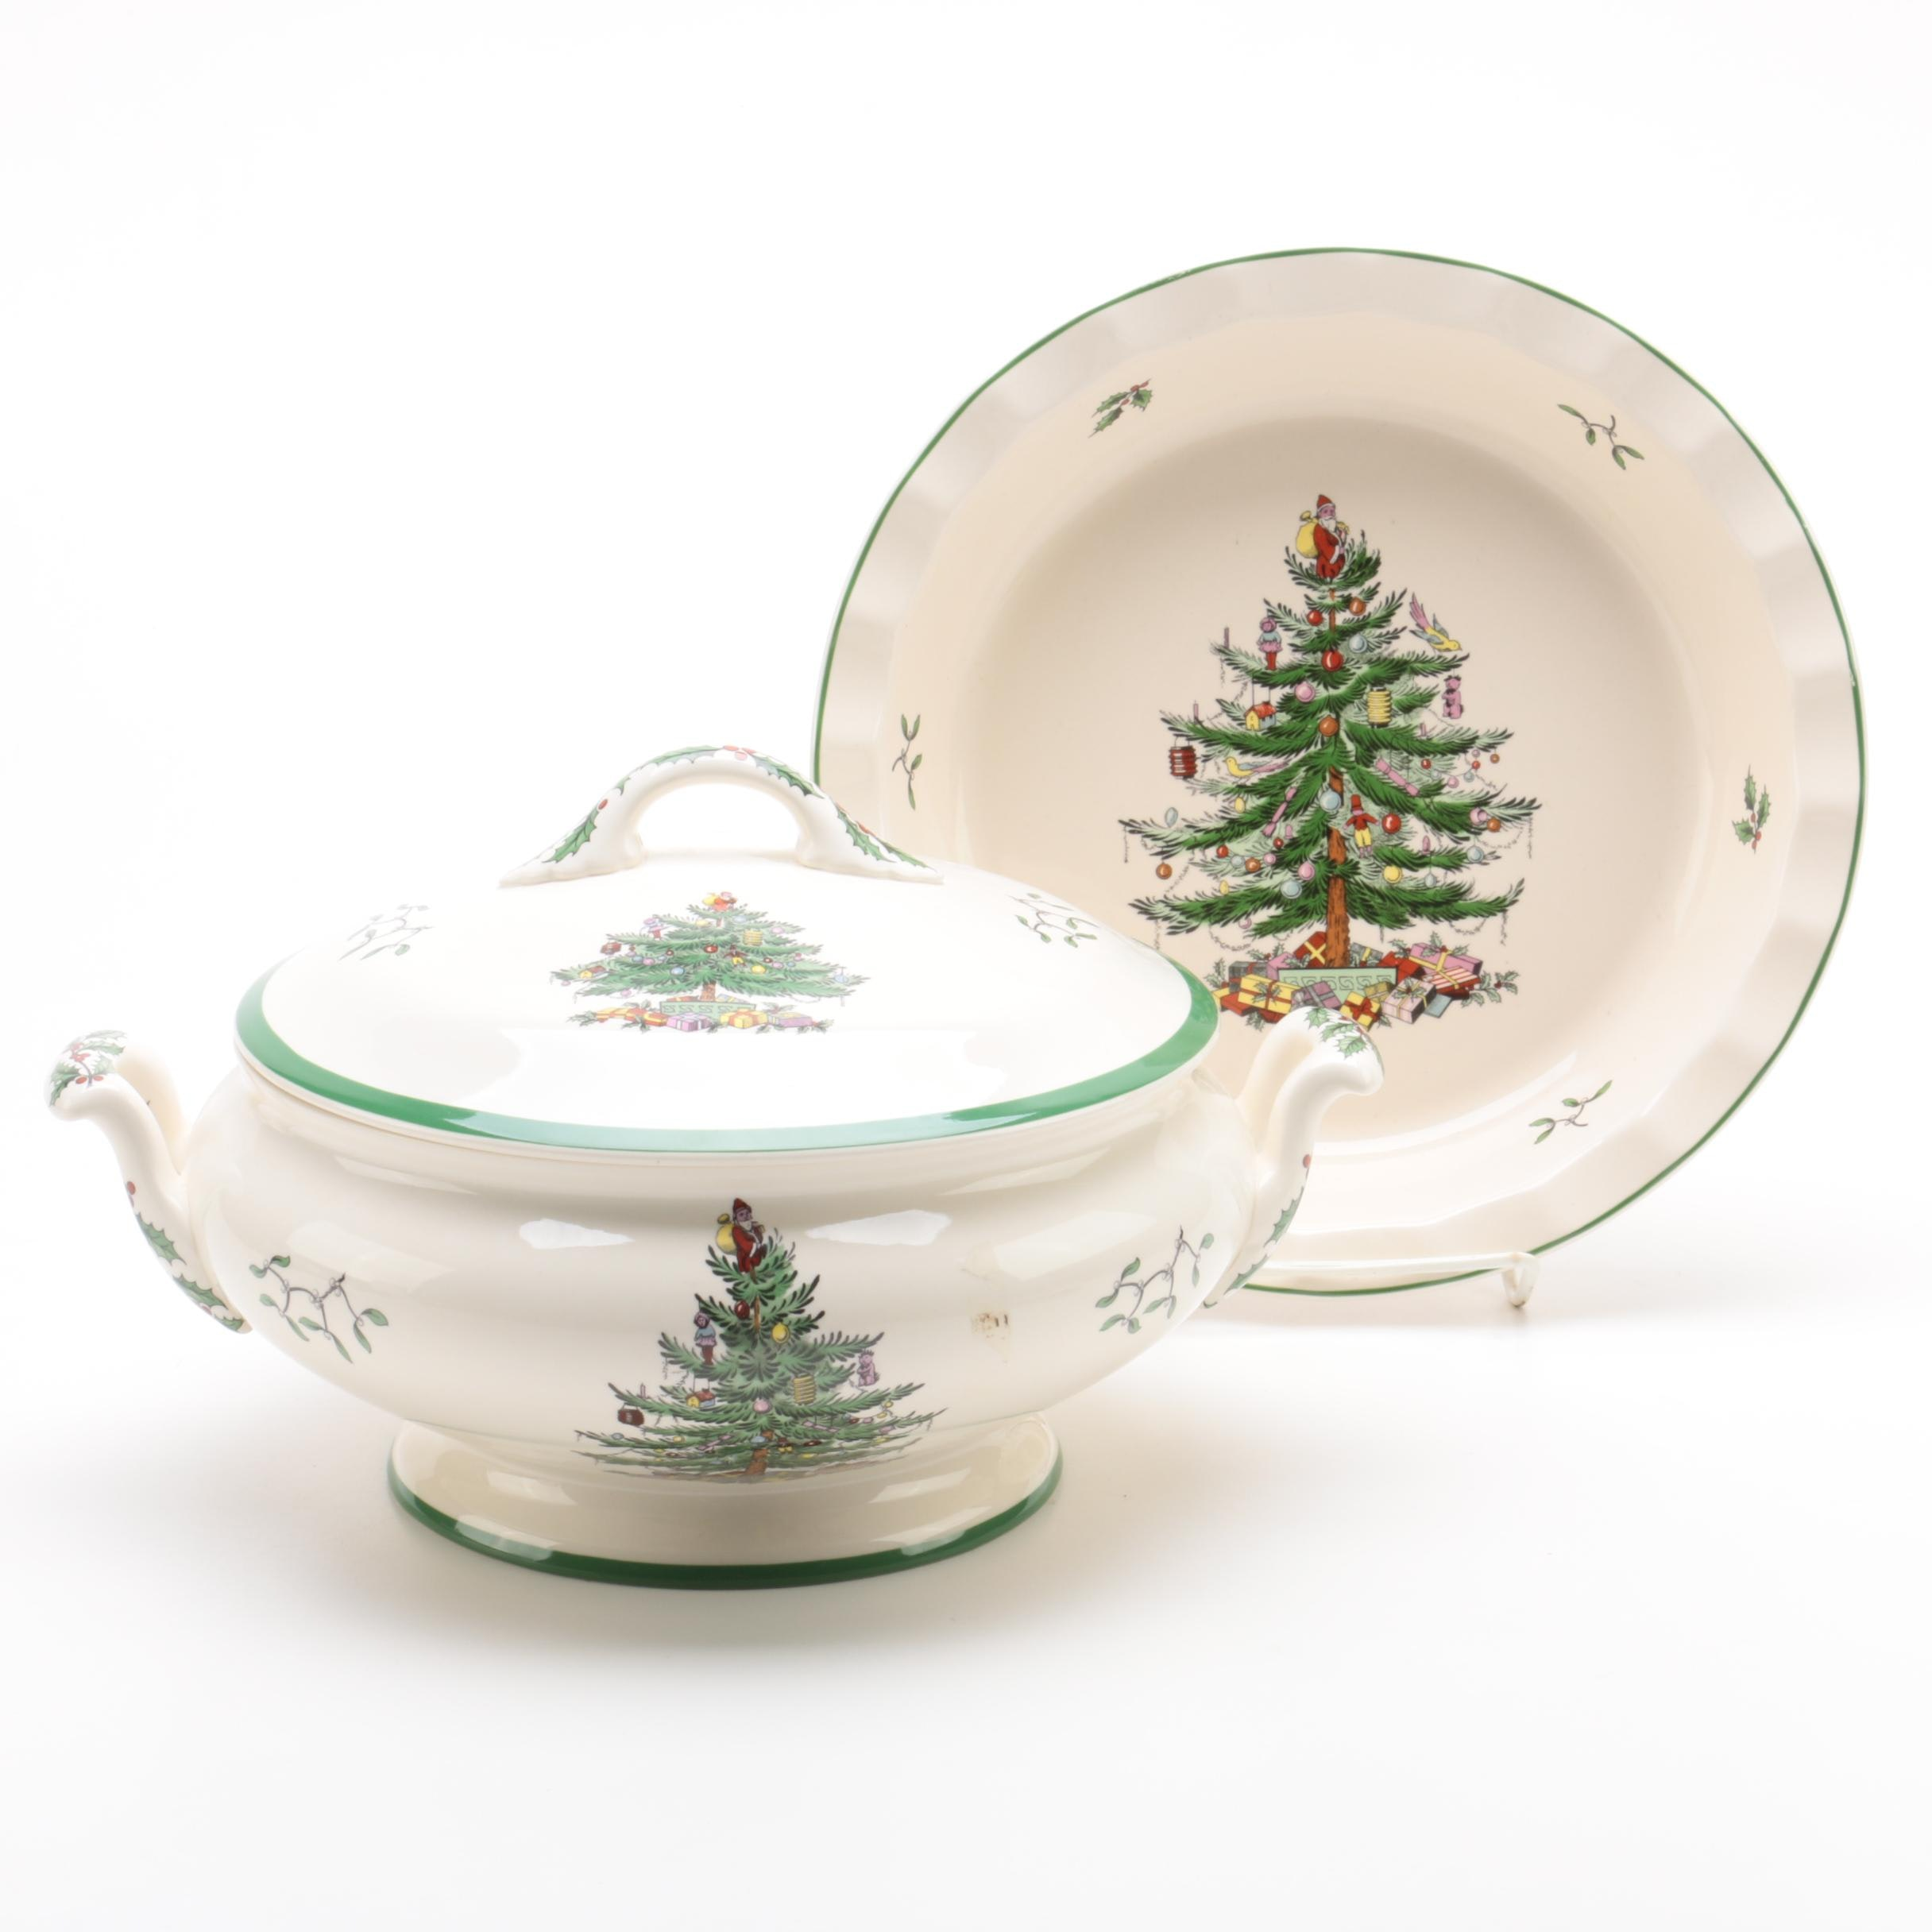 "Spode ""Christmas Tree"" Porcelain Covered Vegetable Dish and Pie Plate"